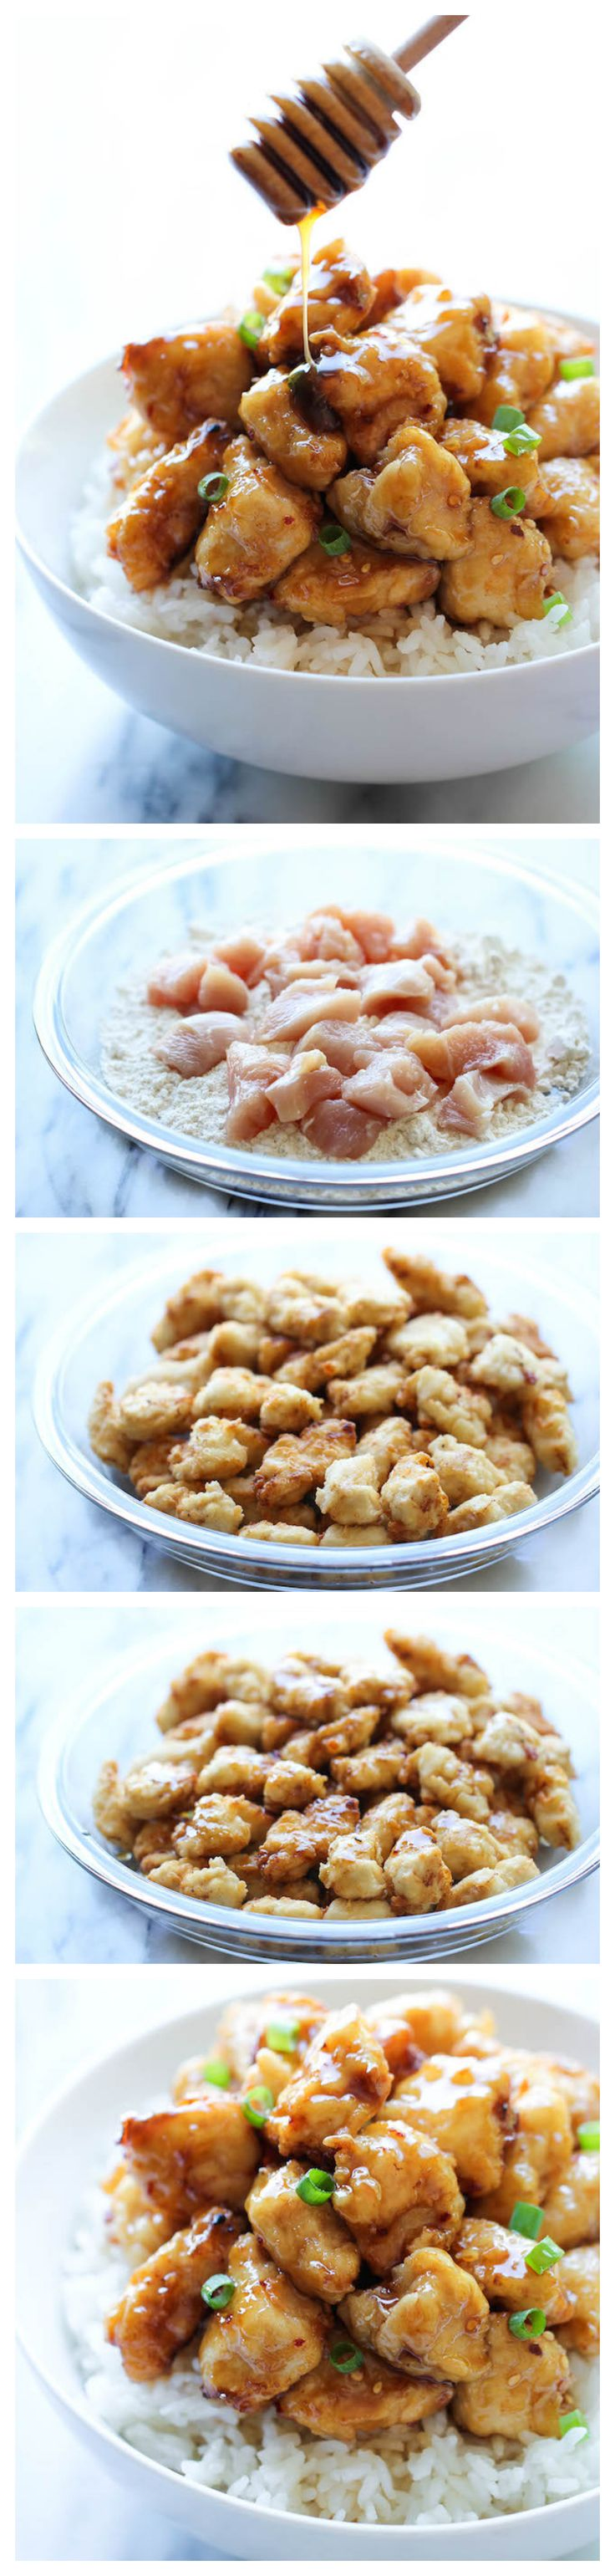 {Asia} Asian Honey Chicken - A take-out favorite that you can easily make right at home - and the homemade version tastes a millions times better!